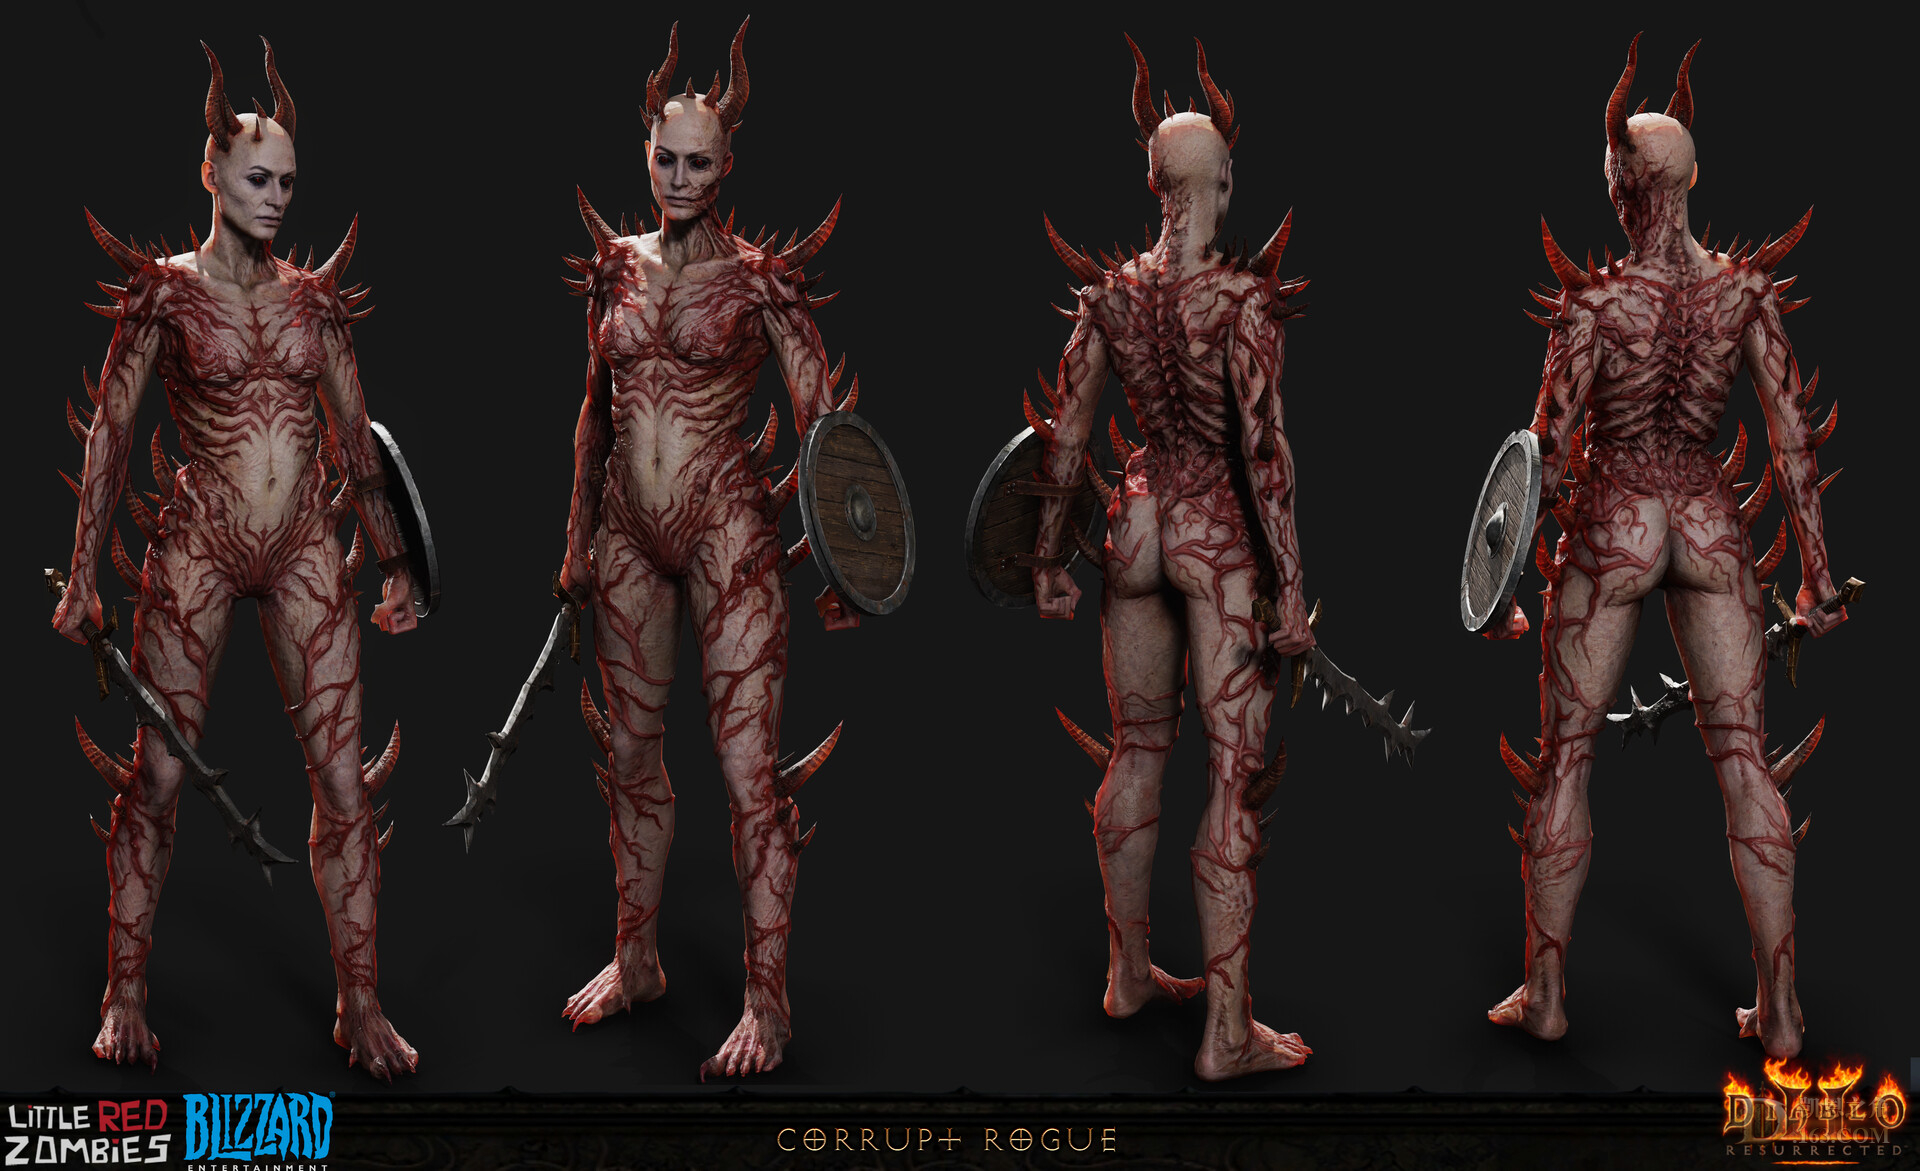 little-red-zombies-corruptrogueheavy-textured-02.jpg